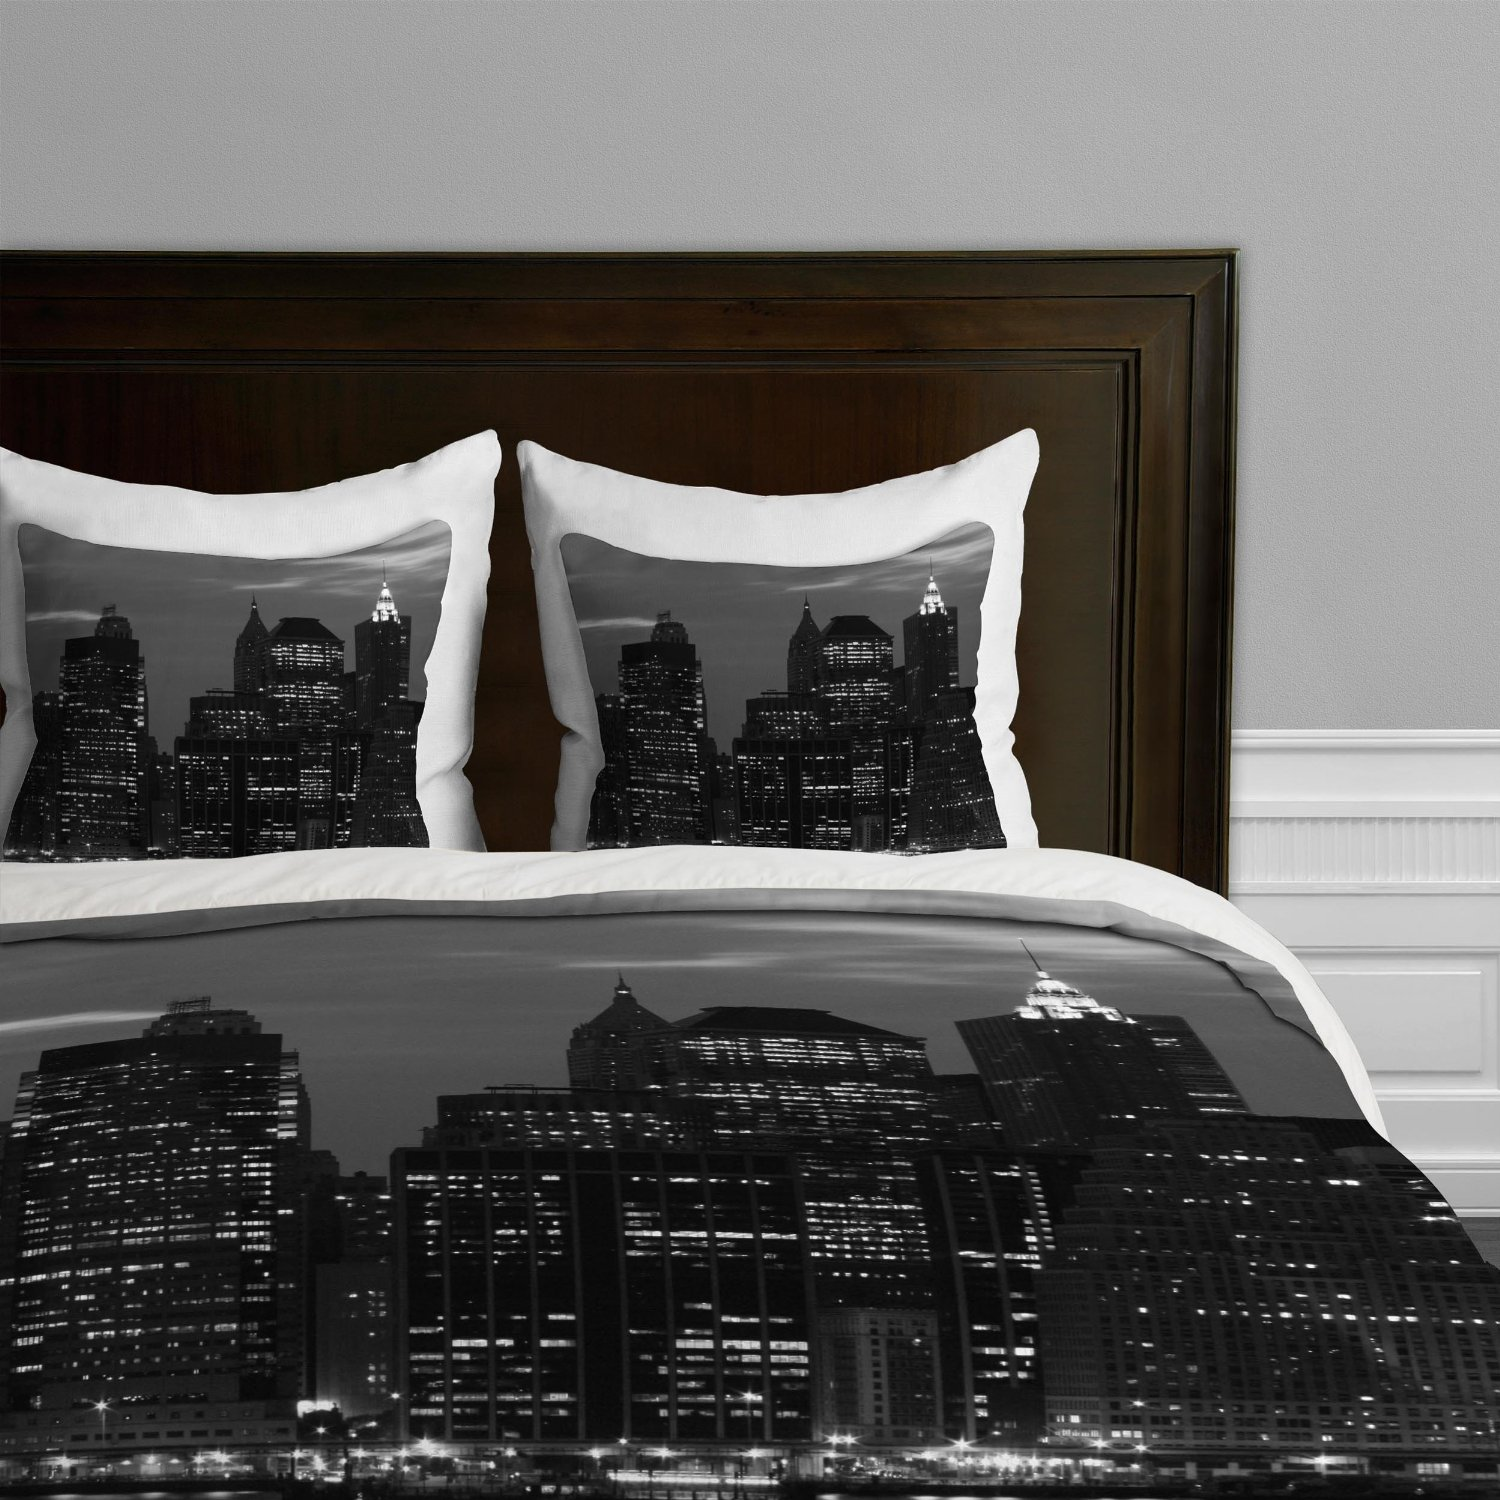 Rooms To Go Bedroom Sets Queen New York City Skyline Bedding Amp Nyc Themed Bedroom Ideas